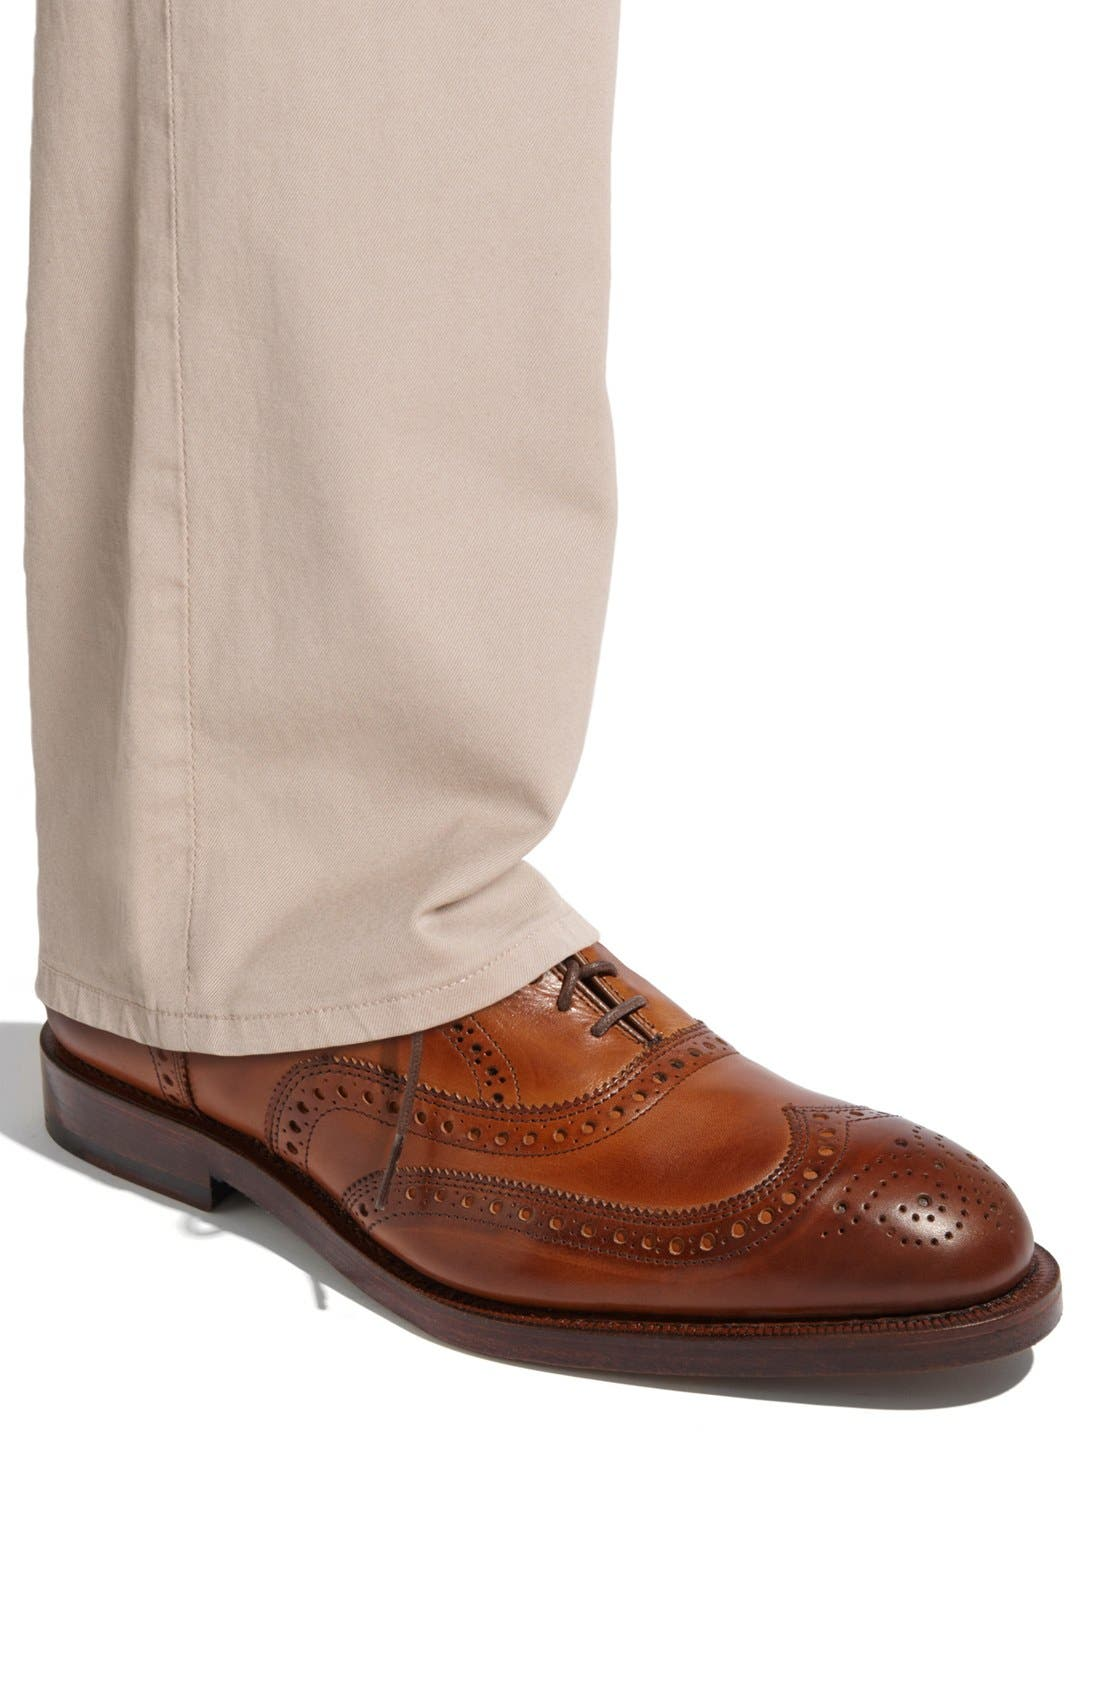 Alternate Image 3  - Allen Edmonds 'The Jefferson' Wingtip Oxford (Men)